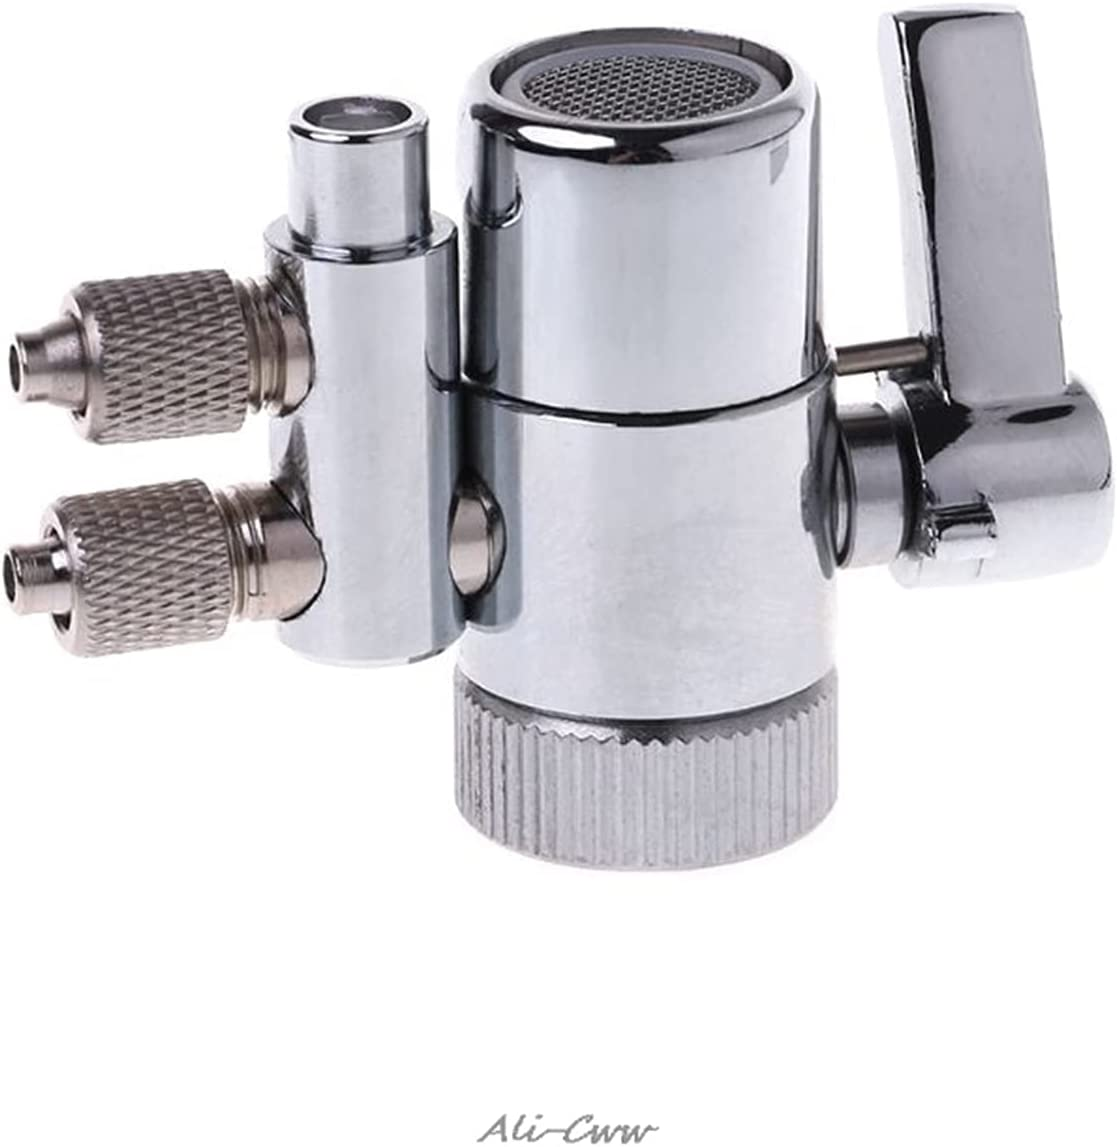 San Jose Mall Chrome Plated Metal Faucet Aerator Diverter for Dual Wat Online limited product Adapter